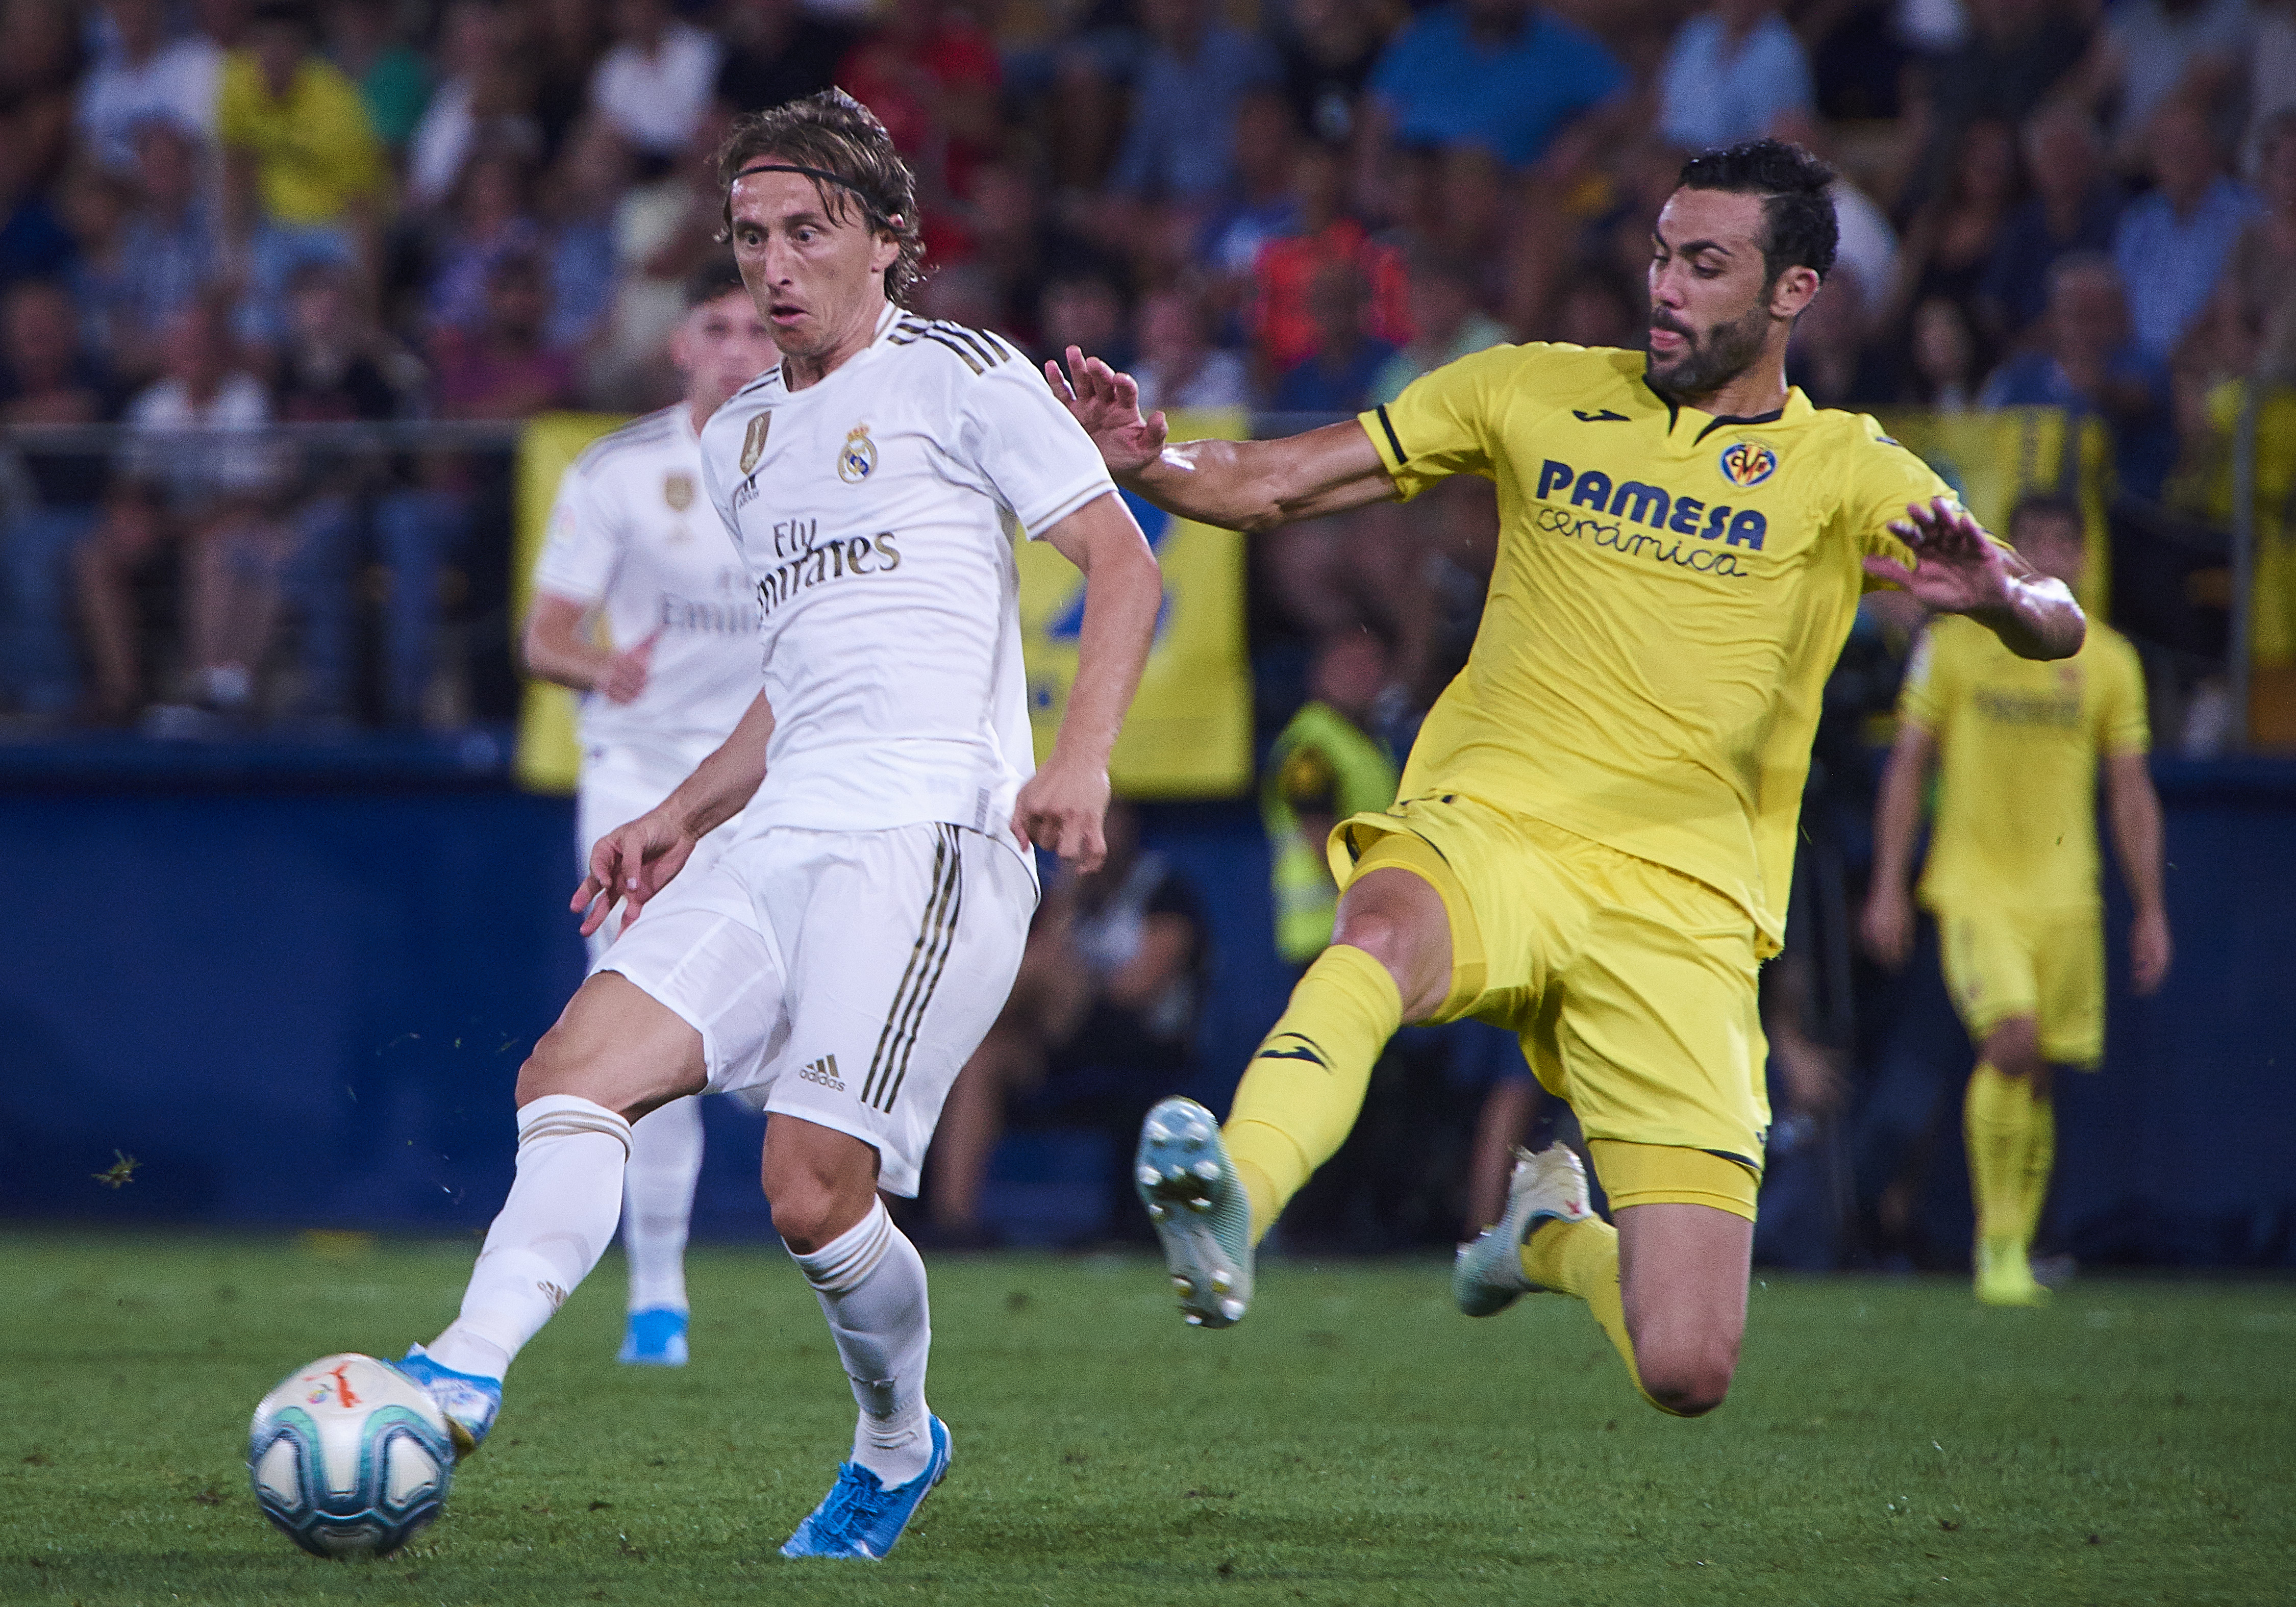 SOCCER: SEP 01 La Liga - Real Madrid CF at Villarreal CF